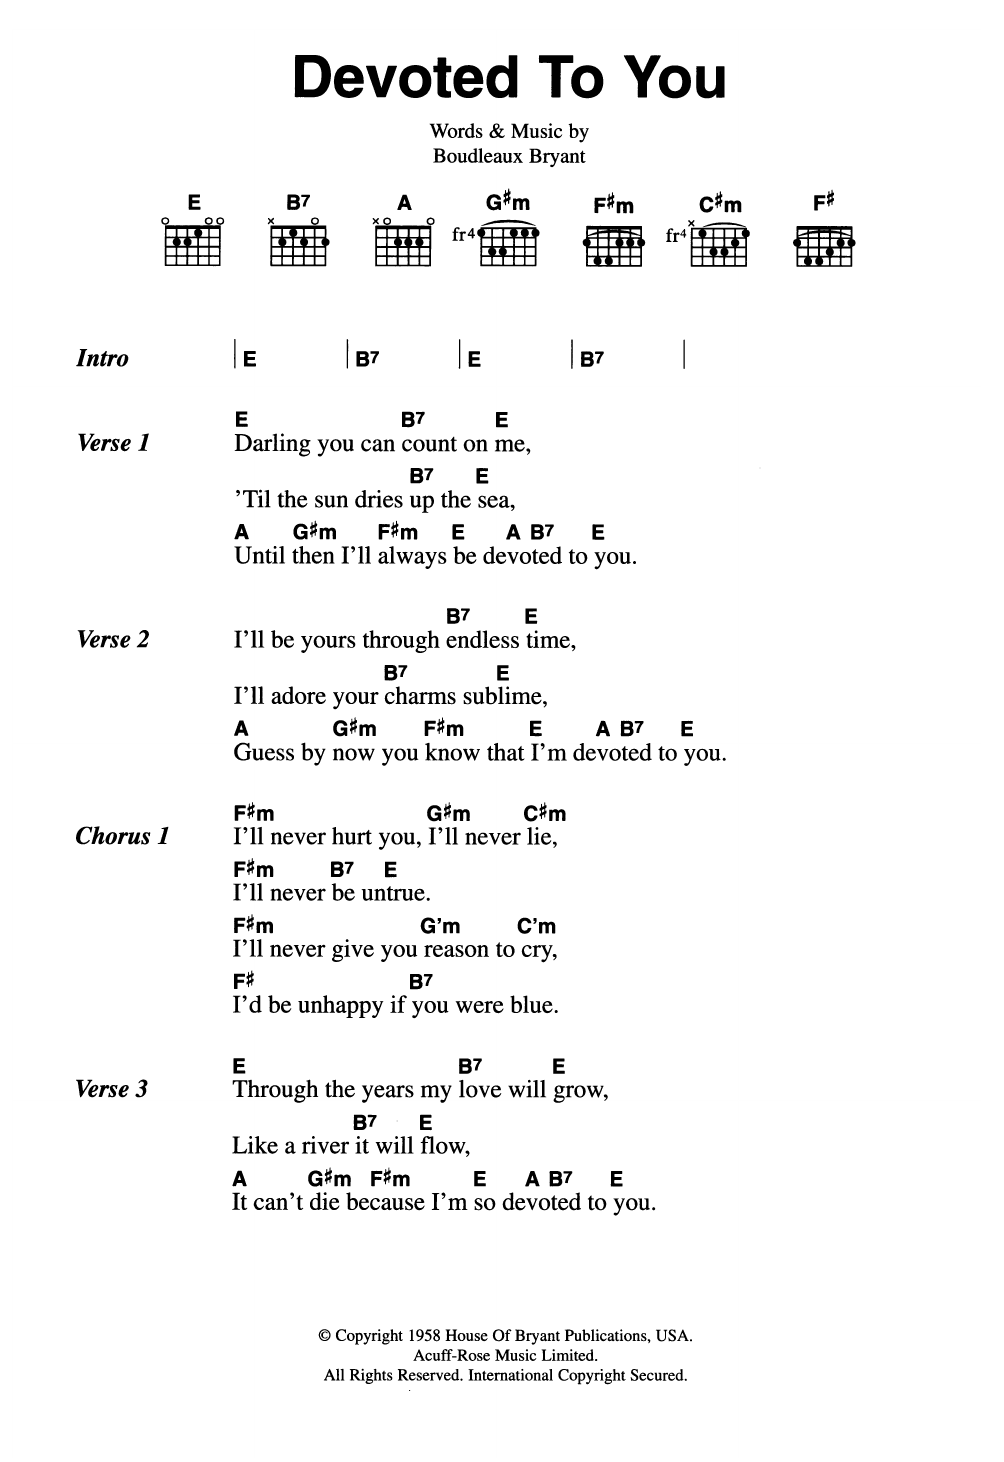 Sheet Music Digital Files To Print Licensed Boudleaux Bryant